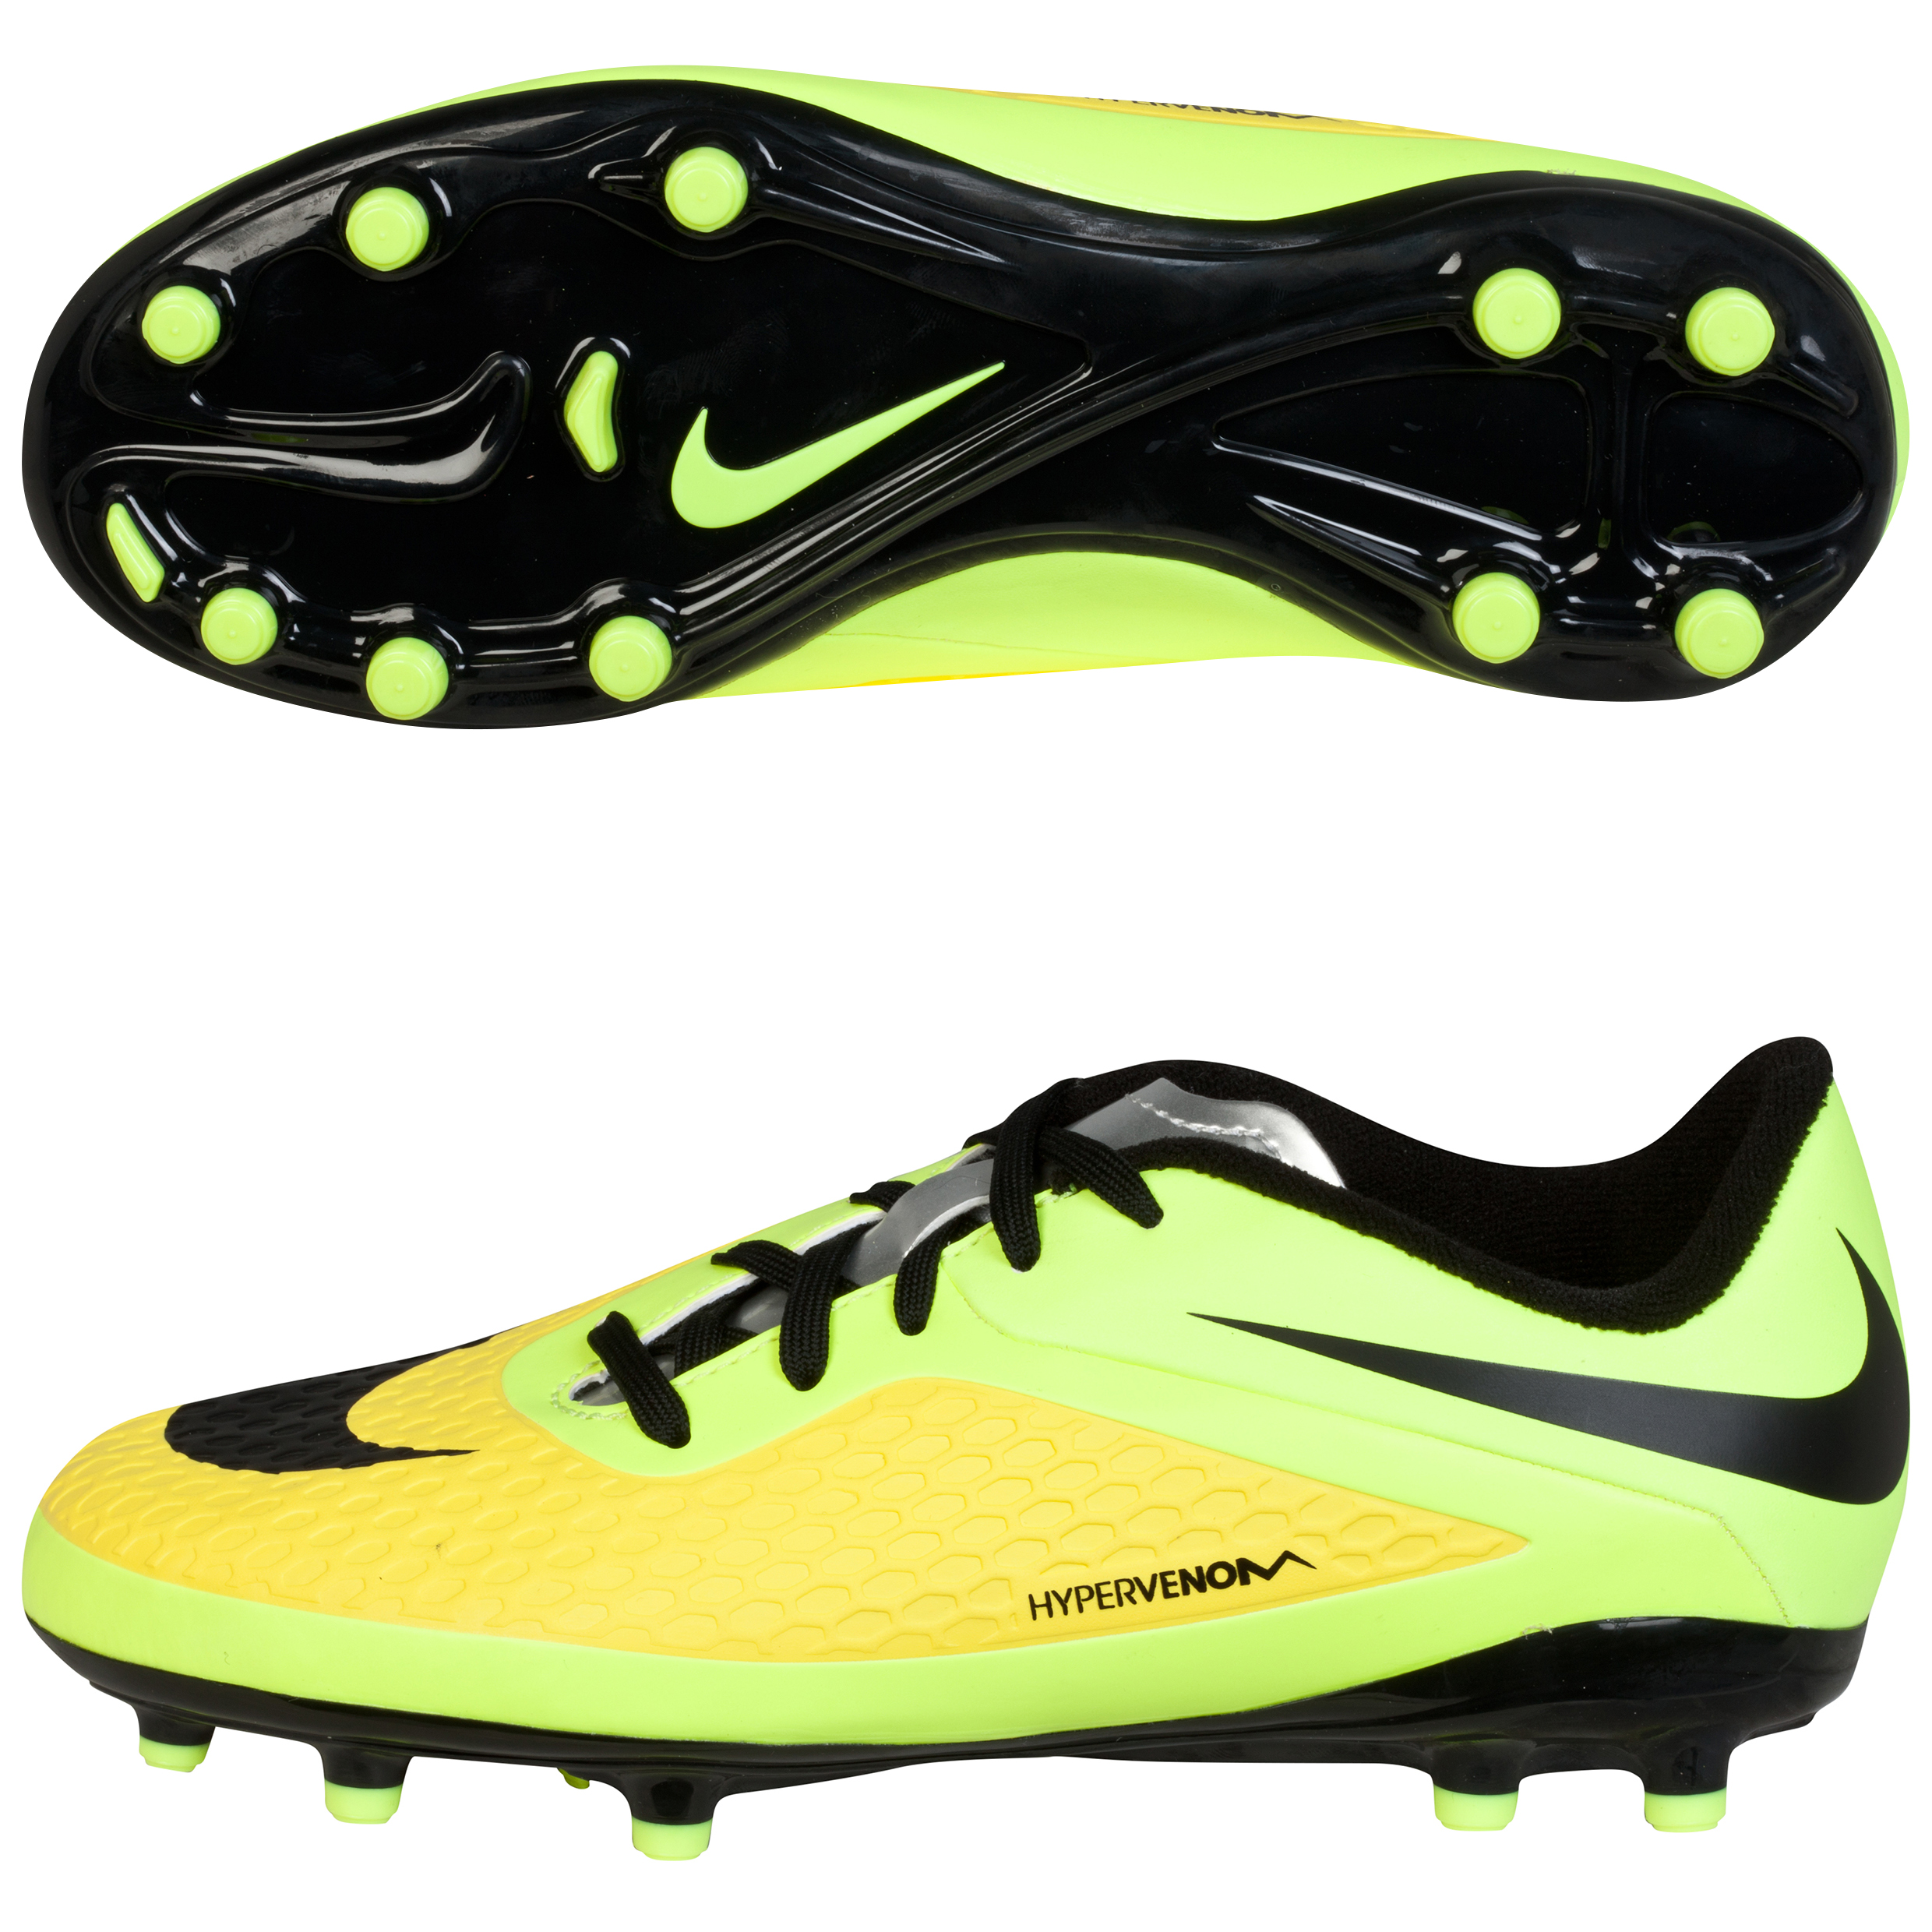 Nike Hypervenom Phelon FG Football Boots  Kids